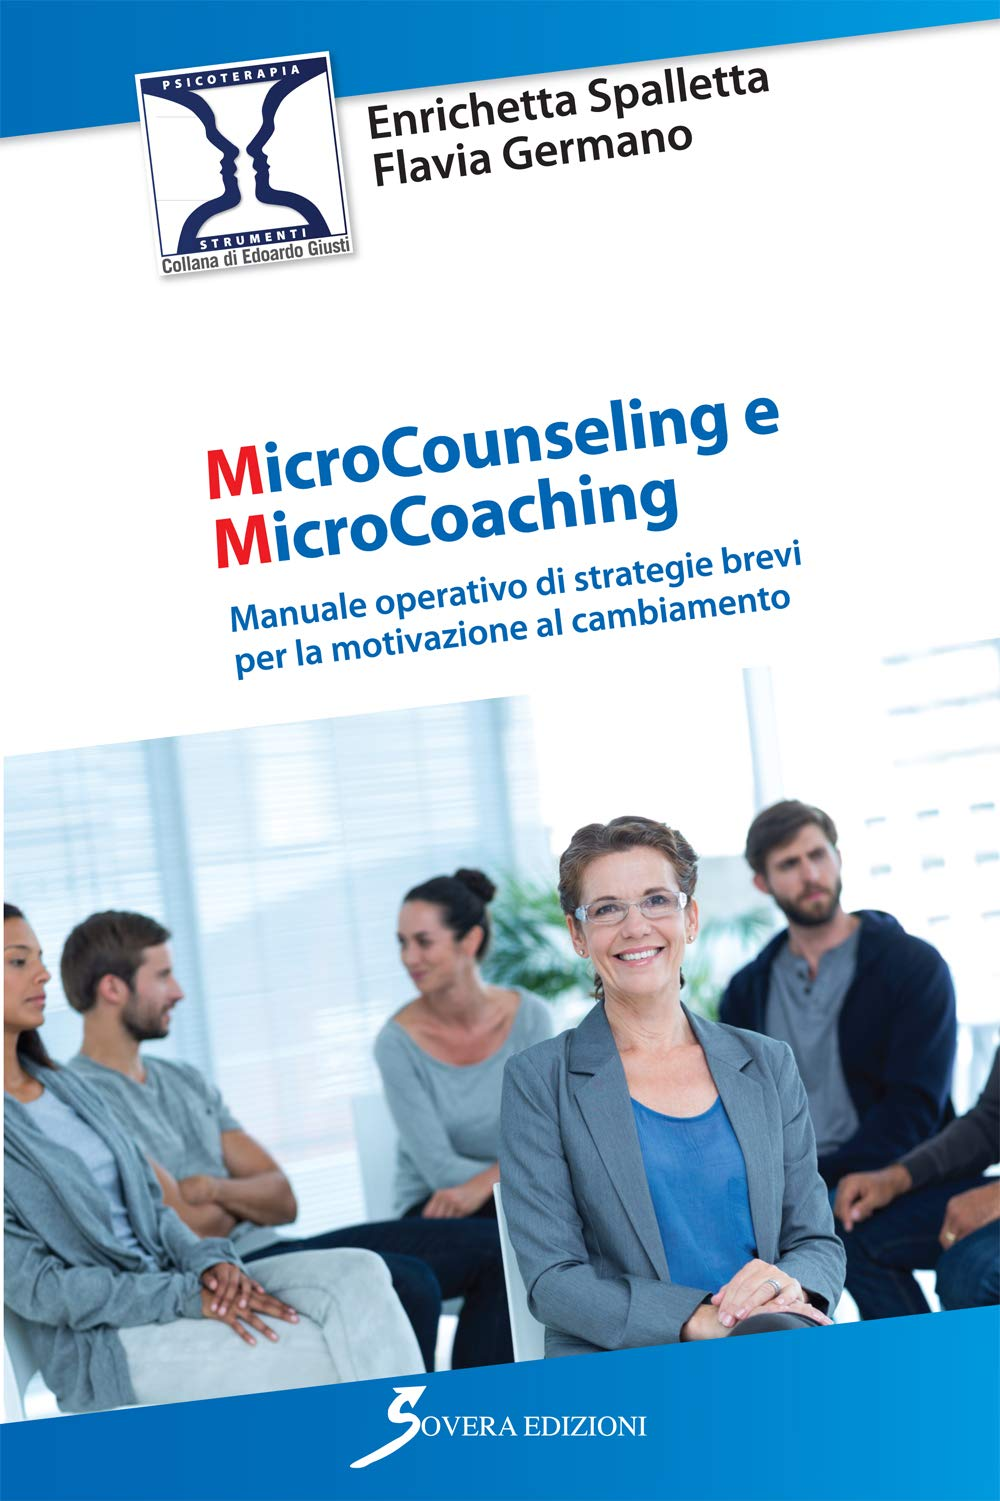 Microcounseling e microcoaching